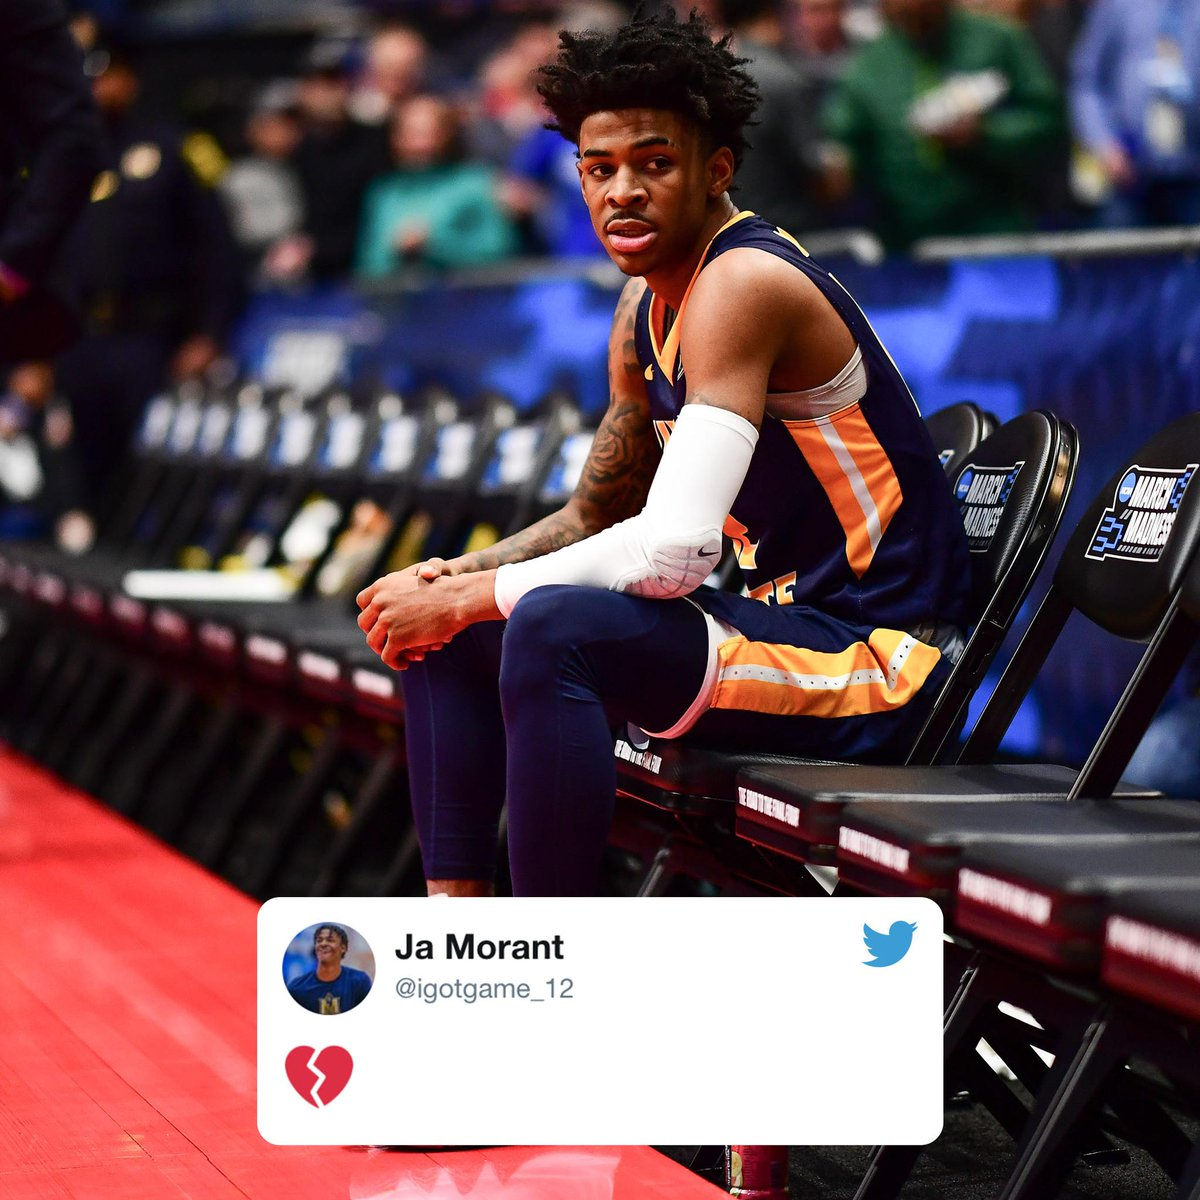 Tough ending for Ja Morant and Murray State.